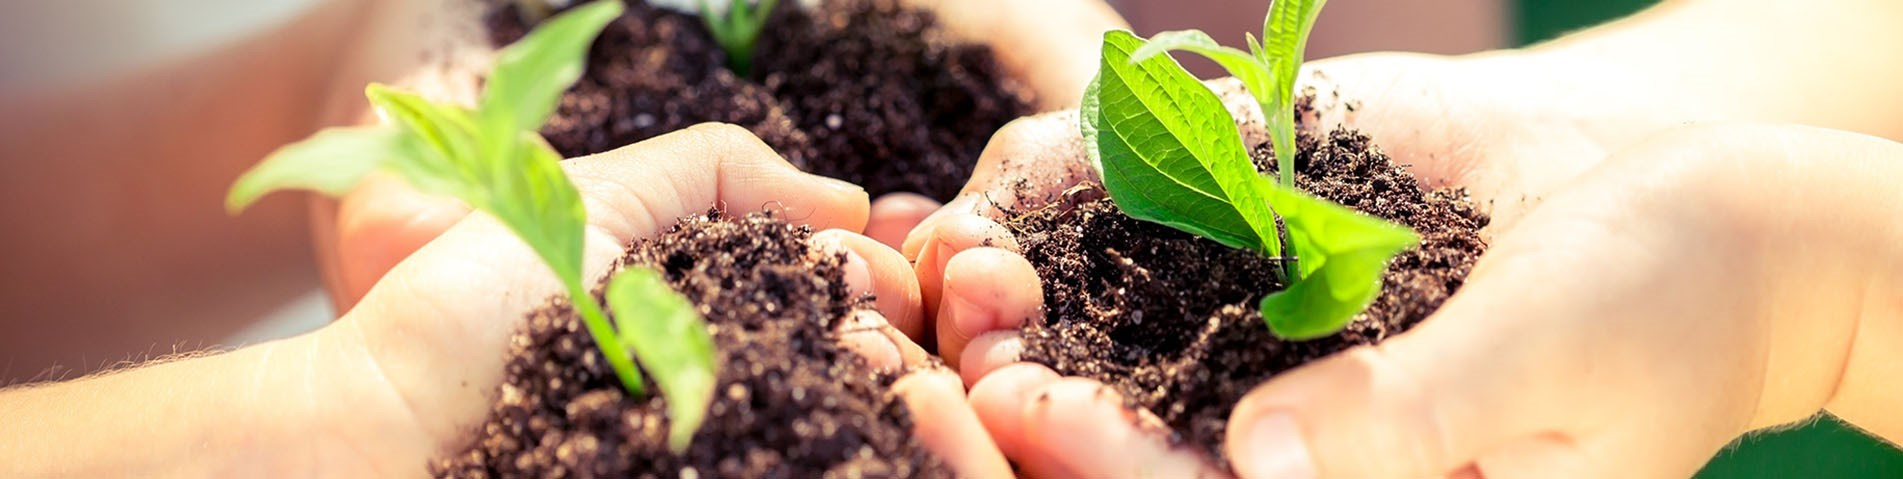 soil and plants in hands_web banner.jpg